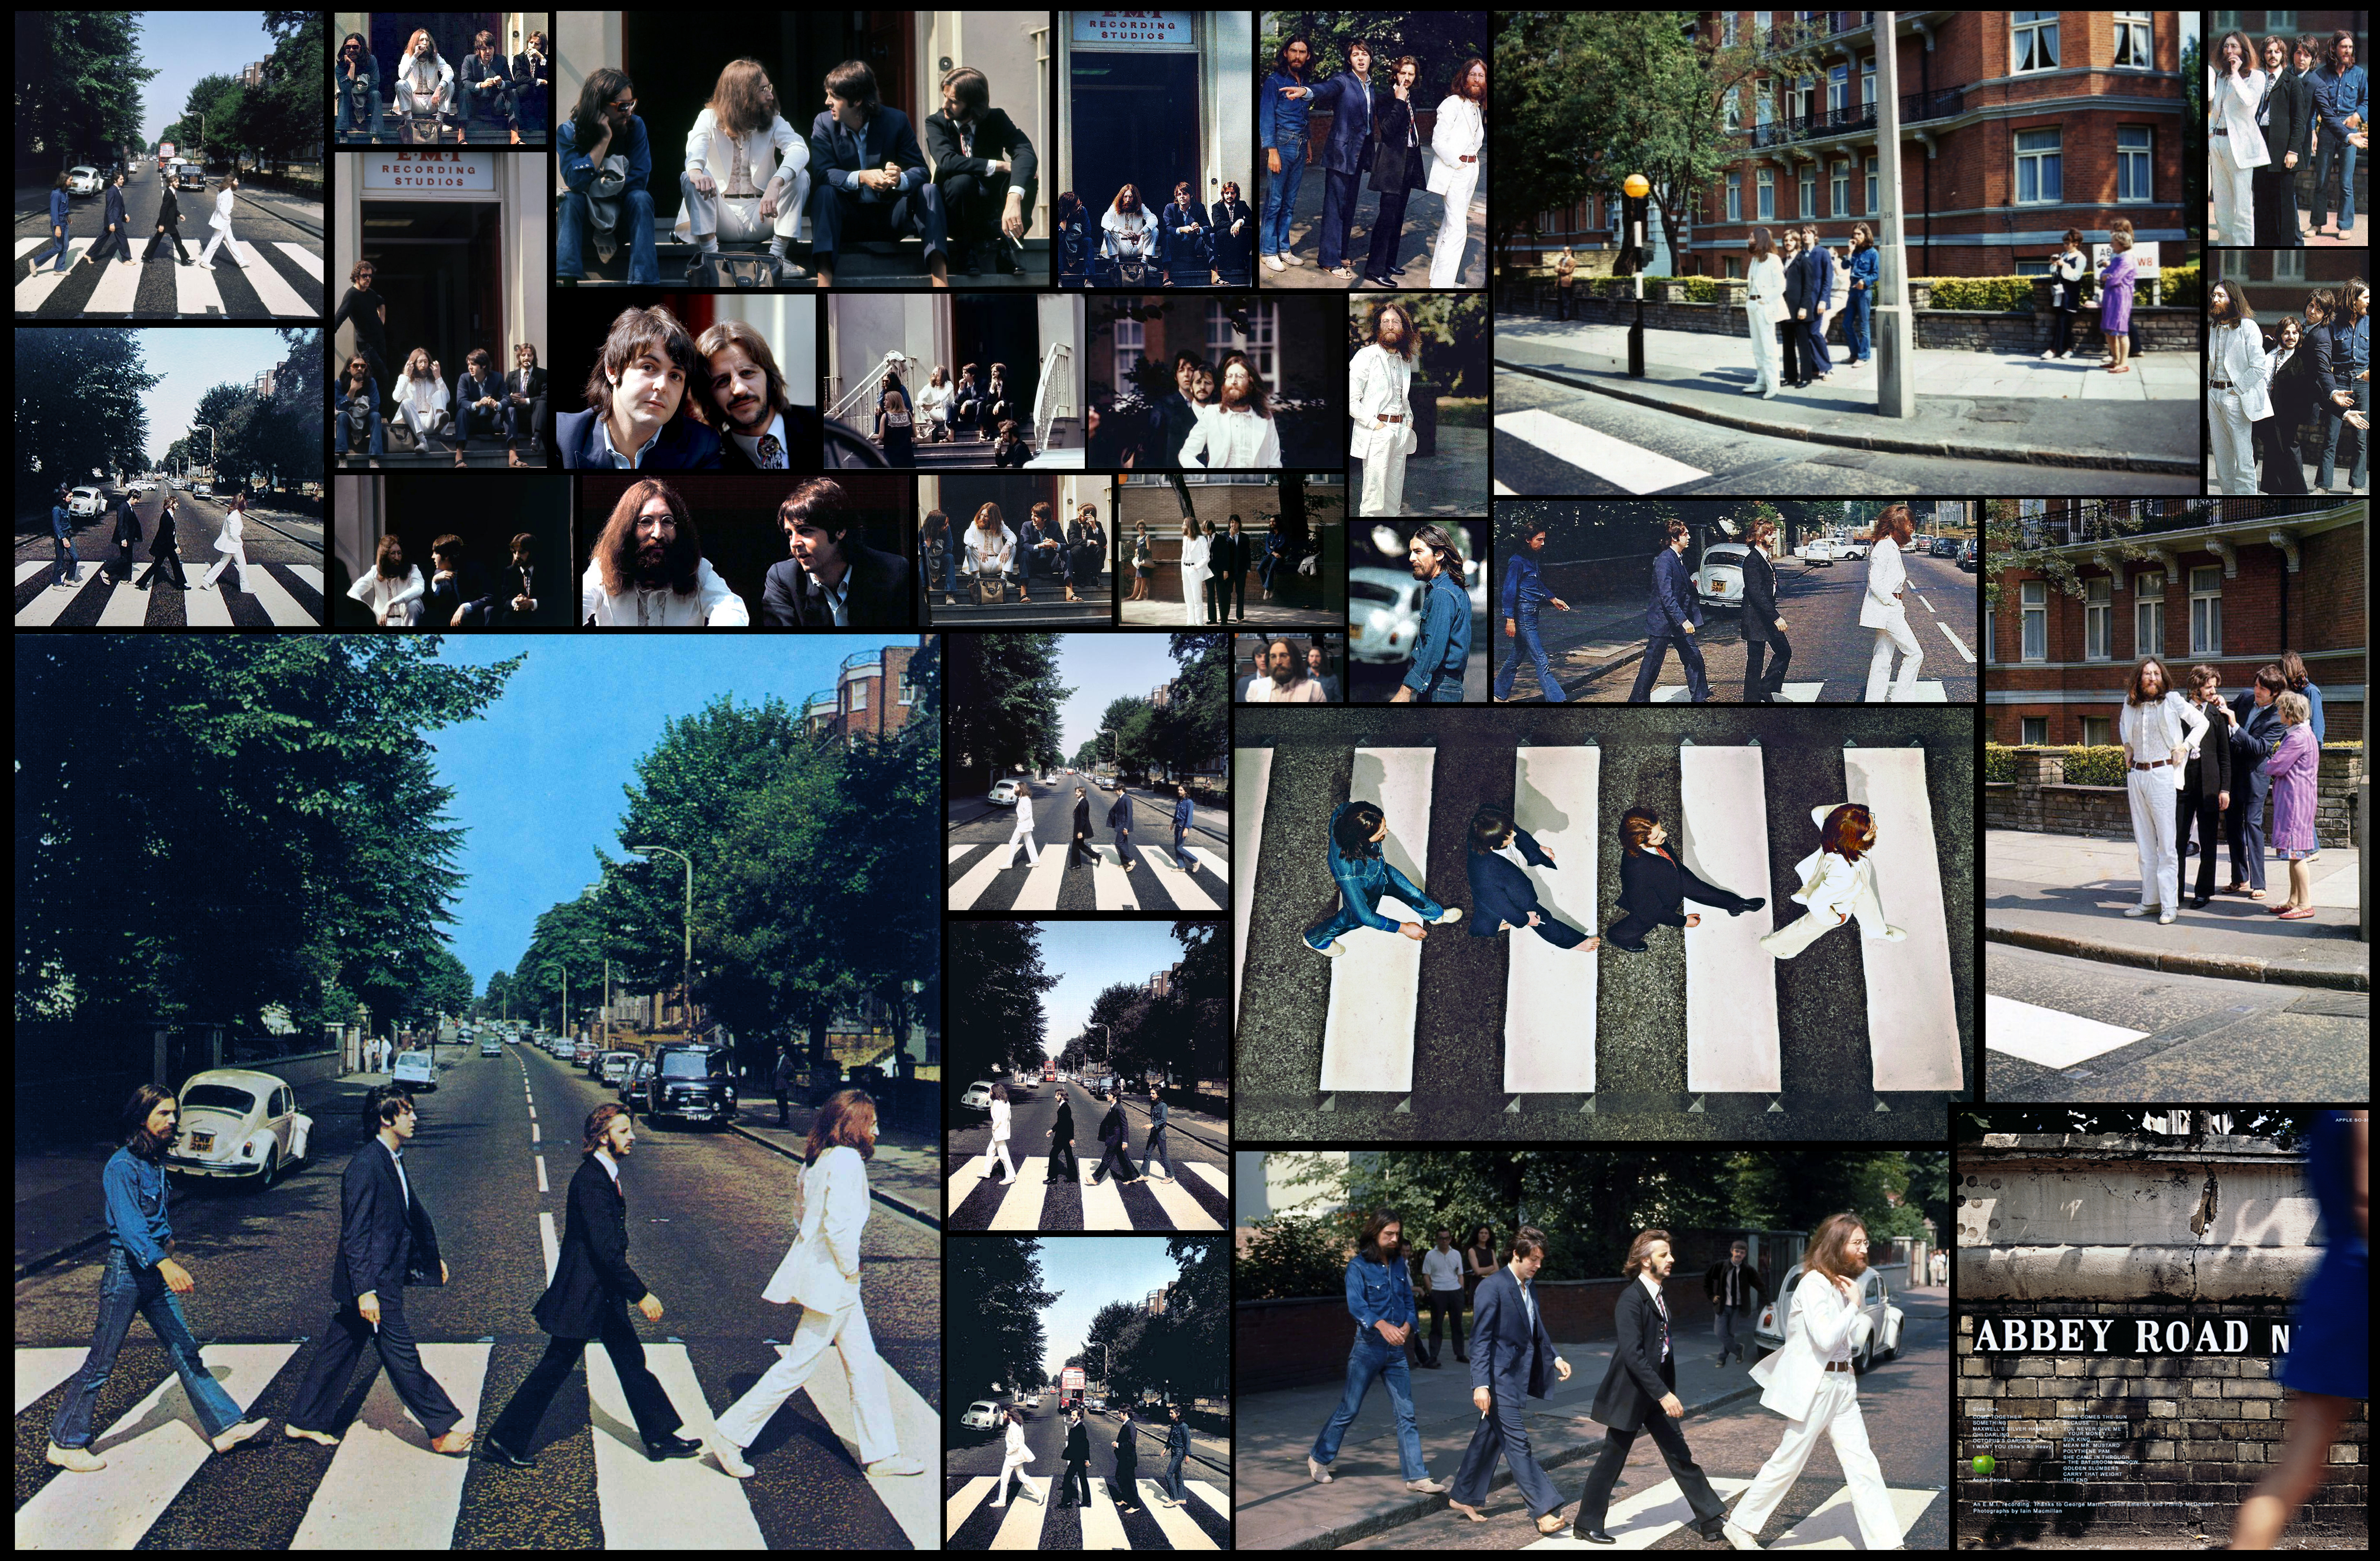 Every Beatles Abbey Road Picture By Drswany22 On Deviantart